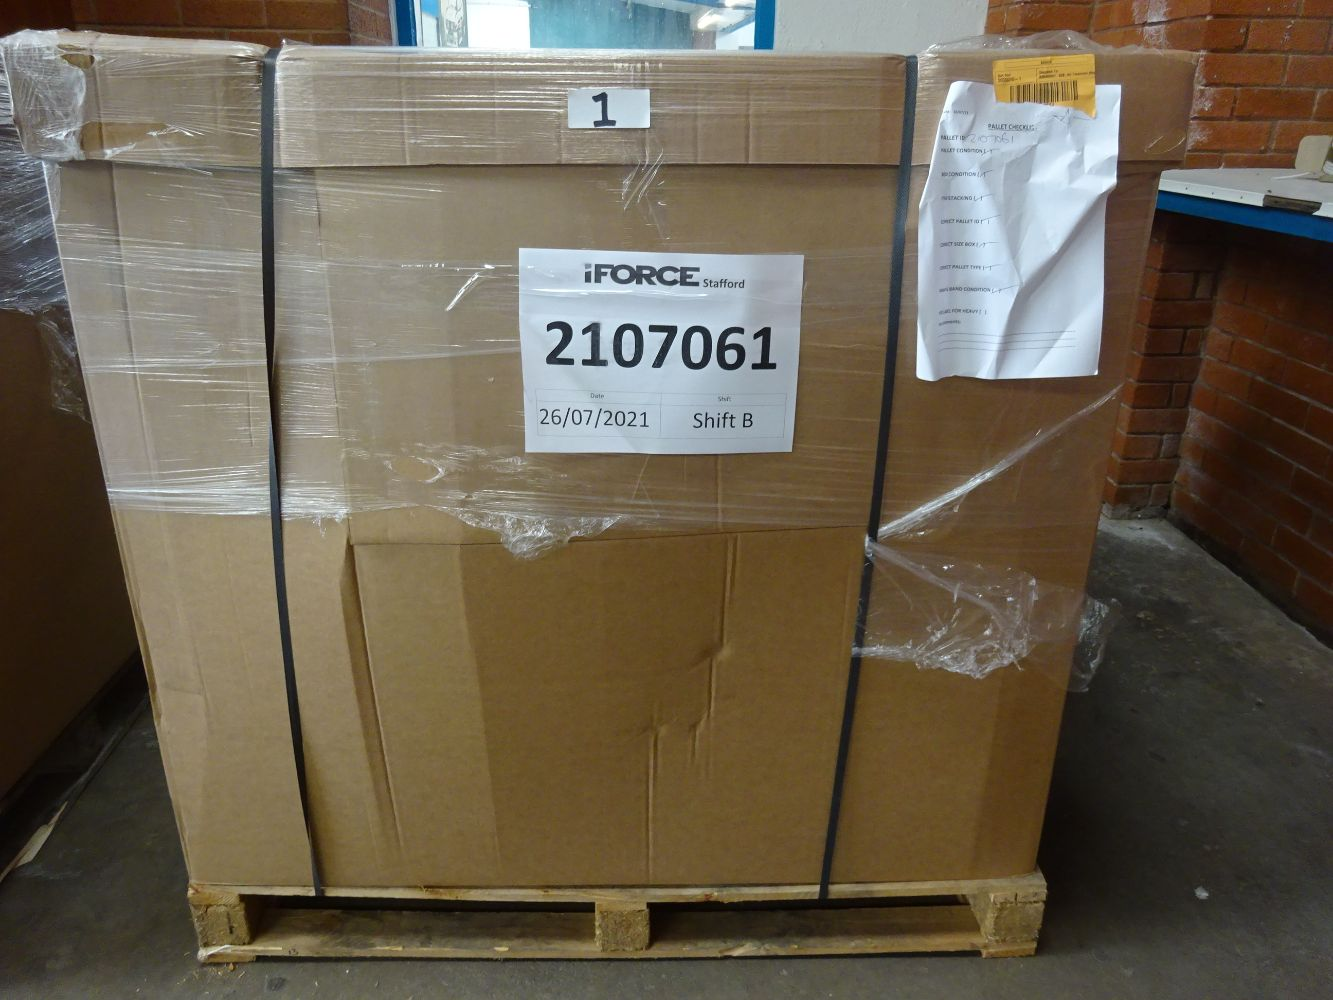 40 B&Q & Screwfix Un-manifested Mystery Pallets Containing Customer Returns Of Tools, Electricals, Garden Furniture etc. GREAT FOR RESELLERS